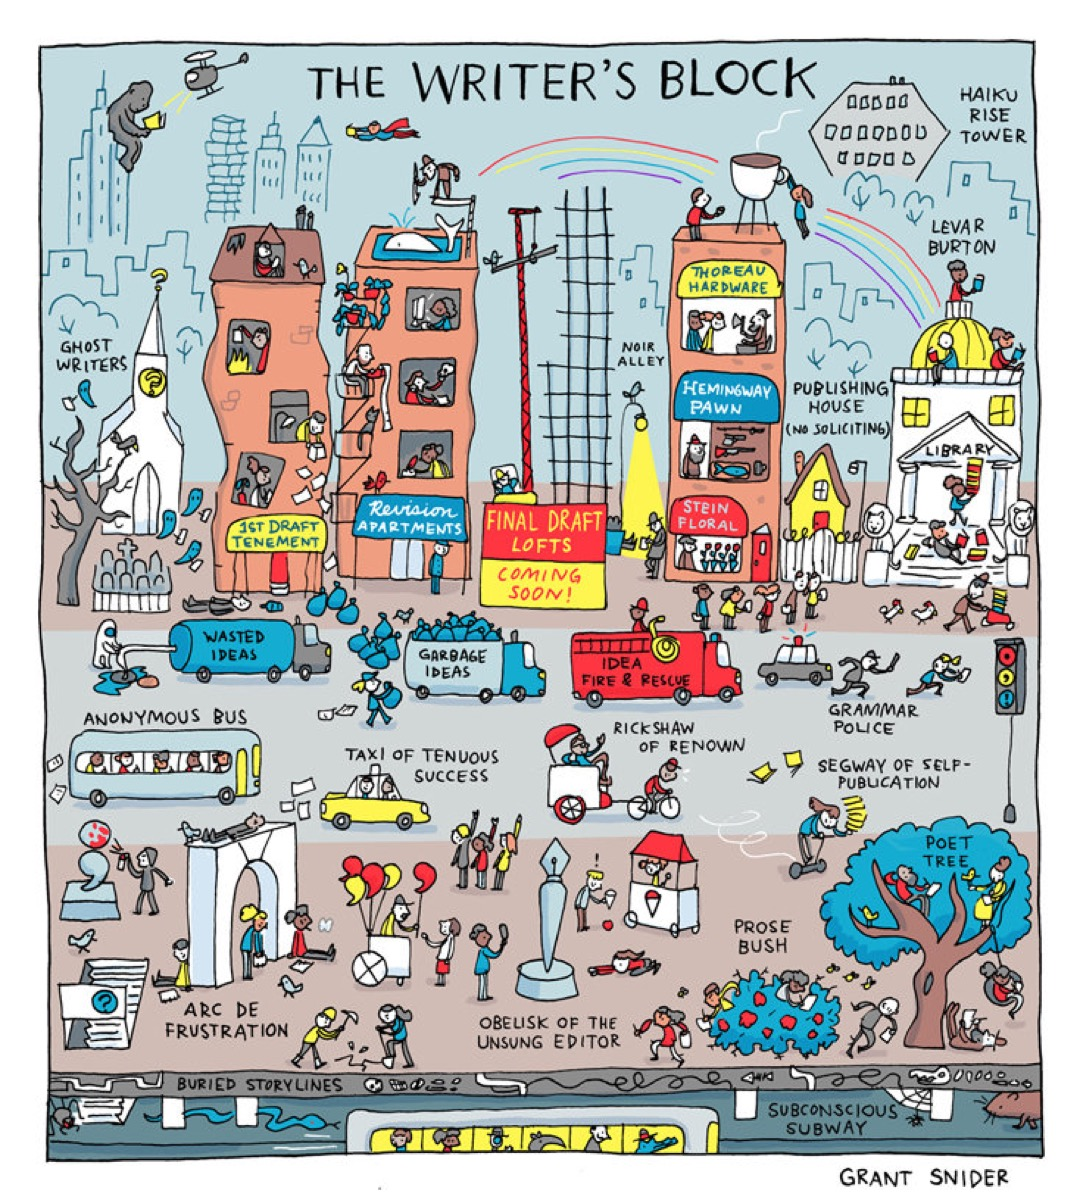 The Writer's Block cartoon by Grant Snider - best about books